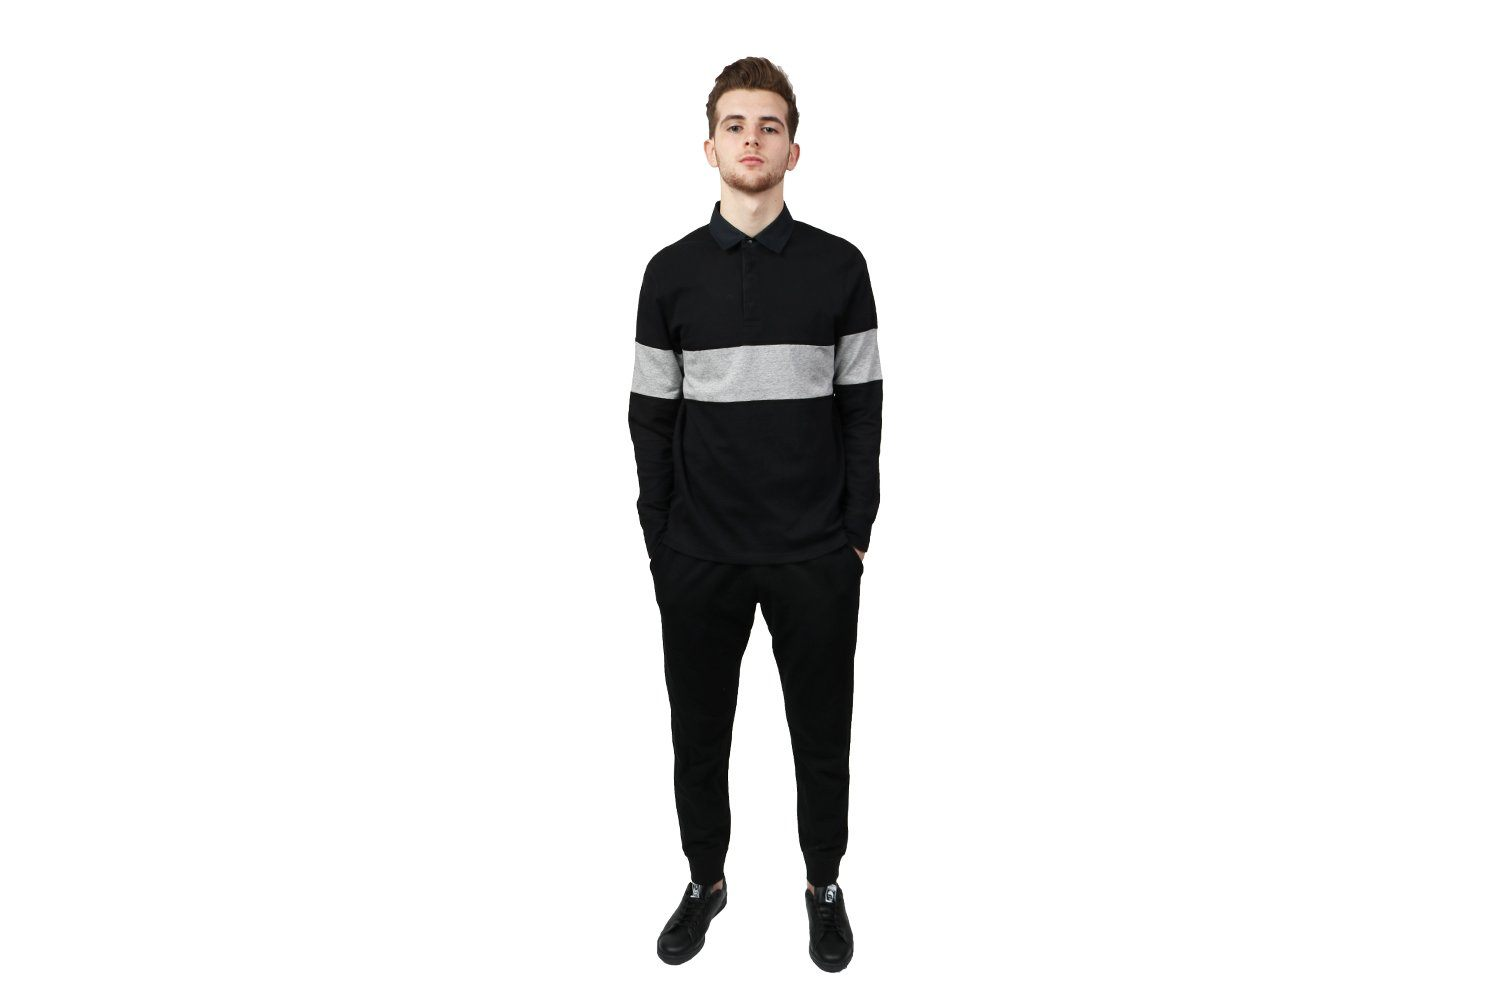 KNIT BRUSHED INTERLOCK RUGBY SHIRT - RC-2144 MENS SOFTGOODS REIGNING CHAMP